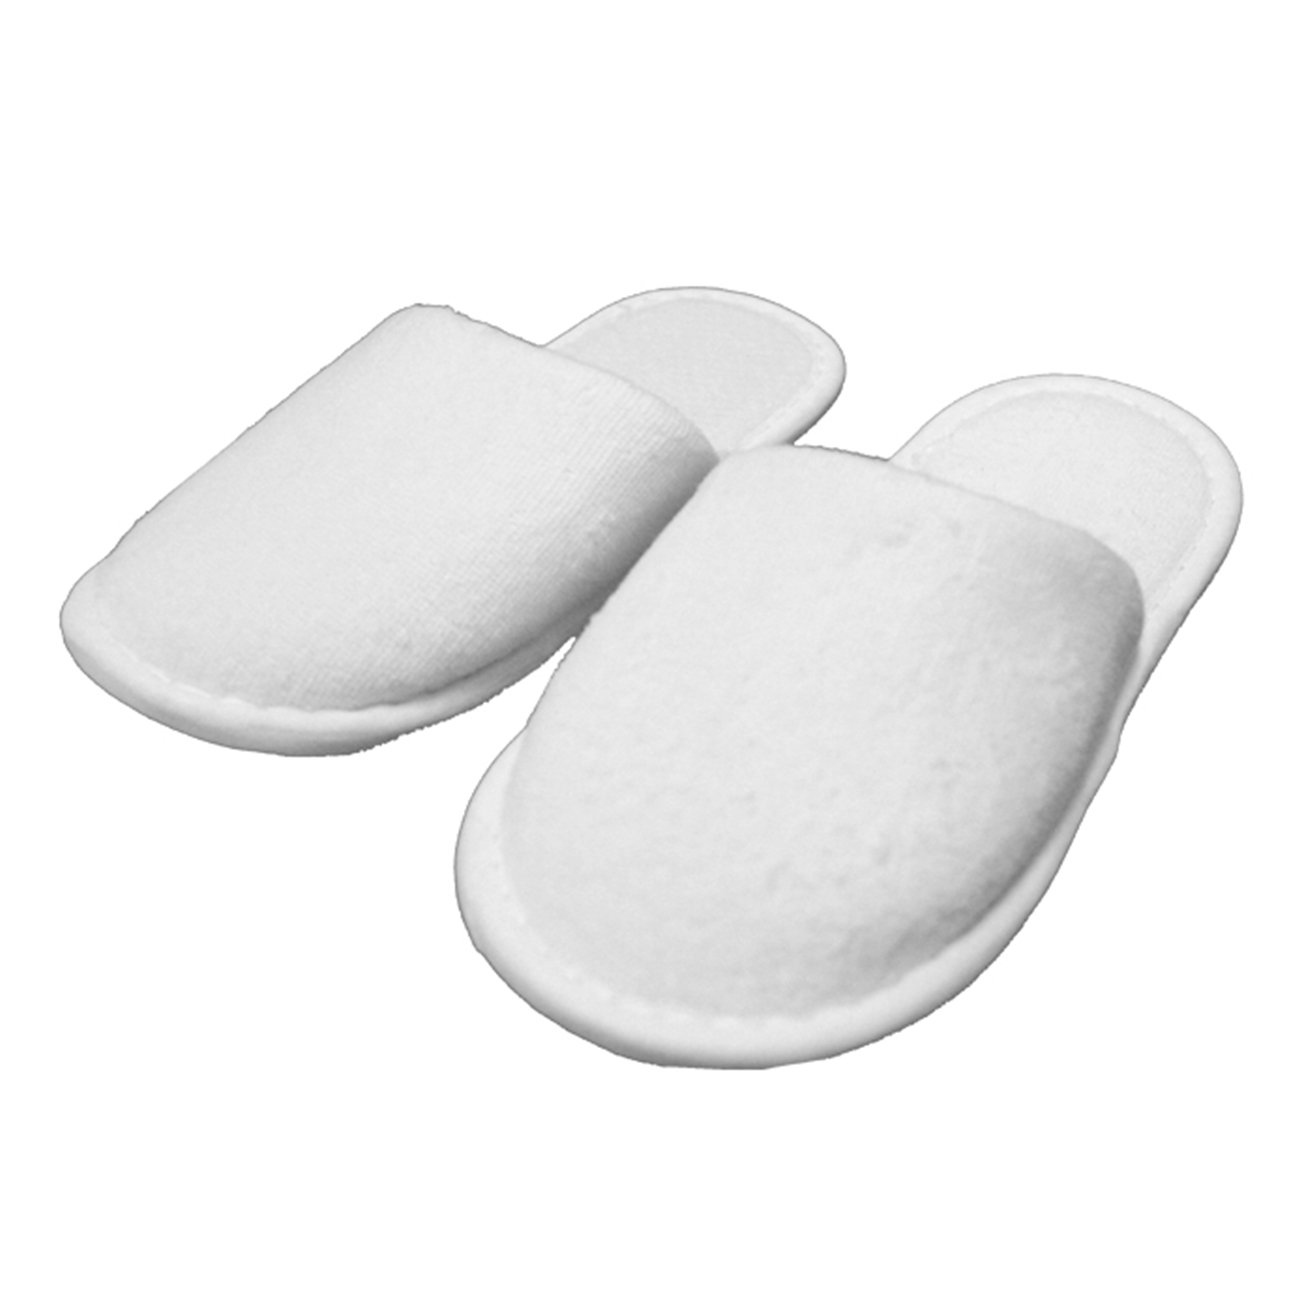 Kid's Closed Toe Slippers Cotton Terry Velour Slippers Cloth Spa Hotel Girls and Boys Slippers Wholesale 100 Pcs (One Size, White)